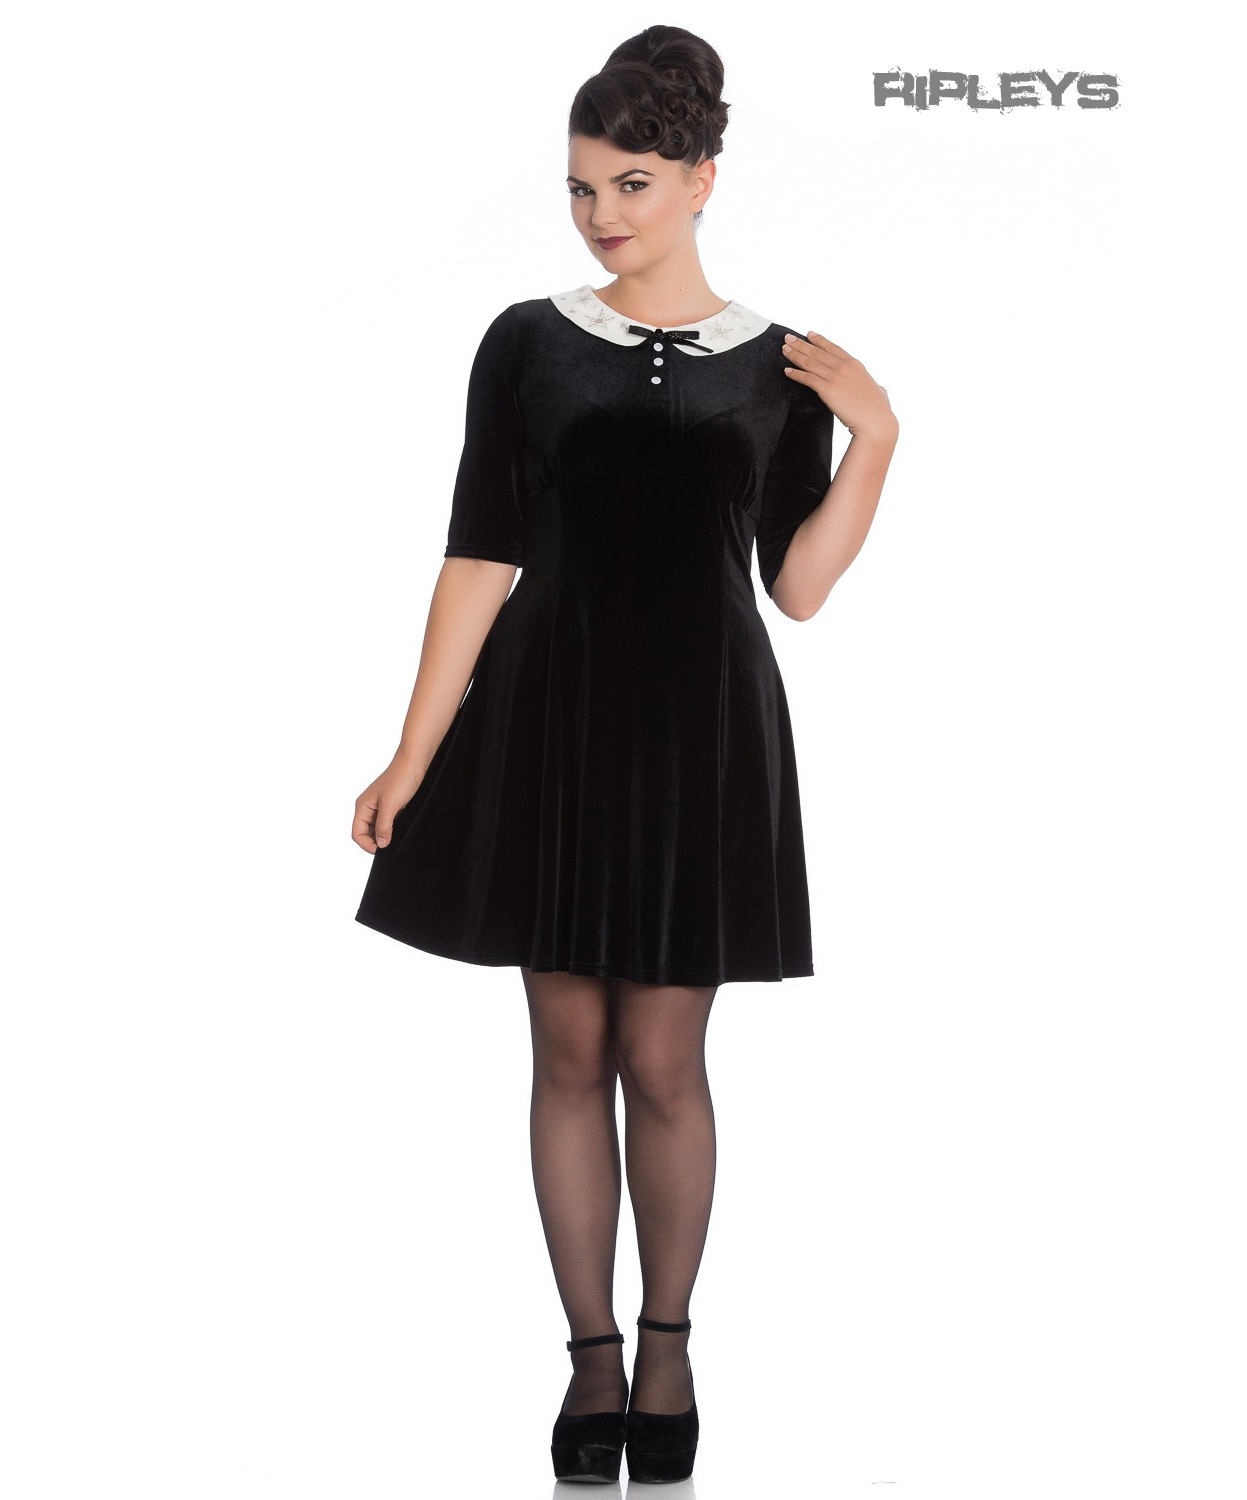 Hell-Bunny-Mini-Skater-Dress-Festive-Christmas-SNOWY-Black-Snowflakes-All-Sizes thumbnail 26